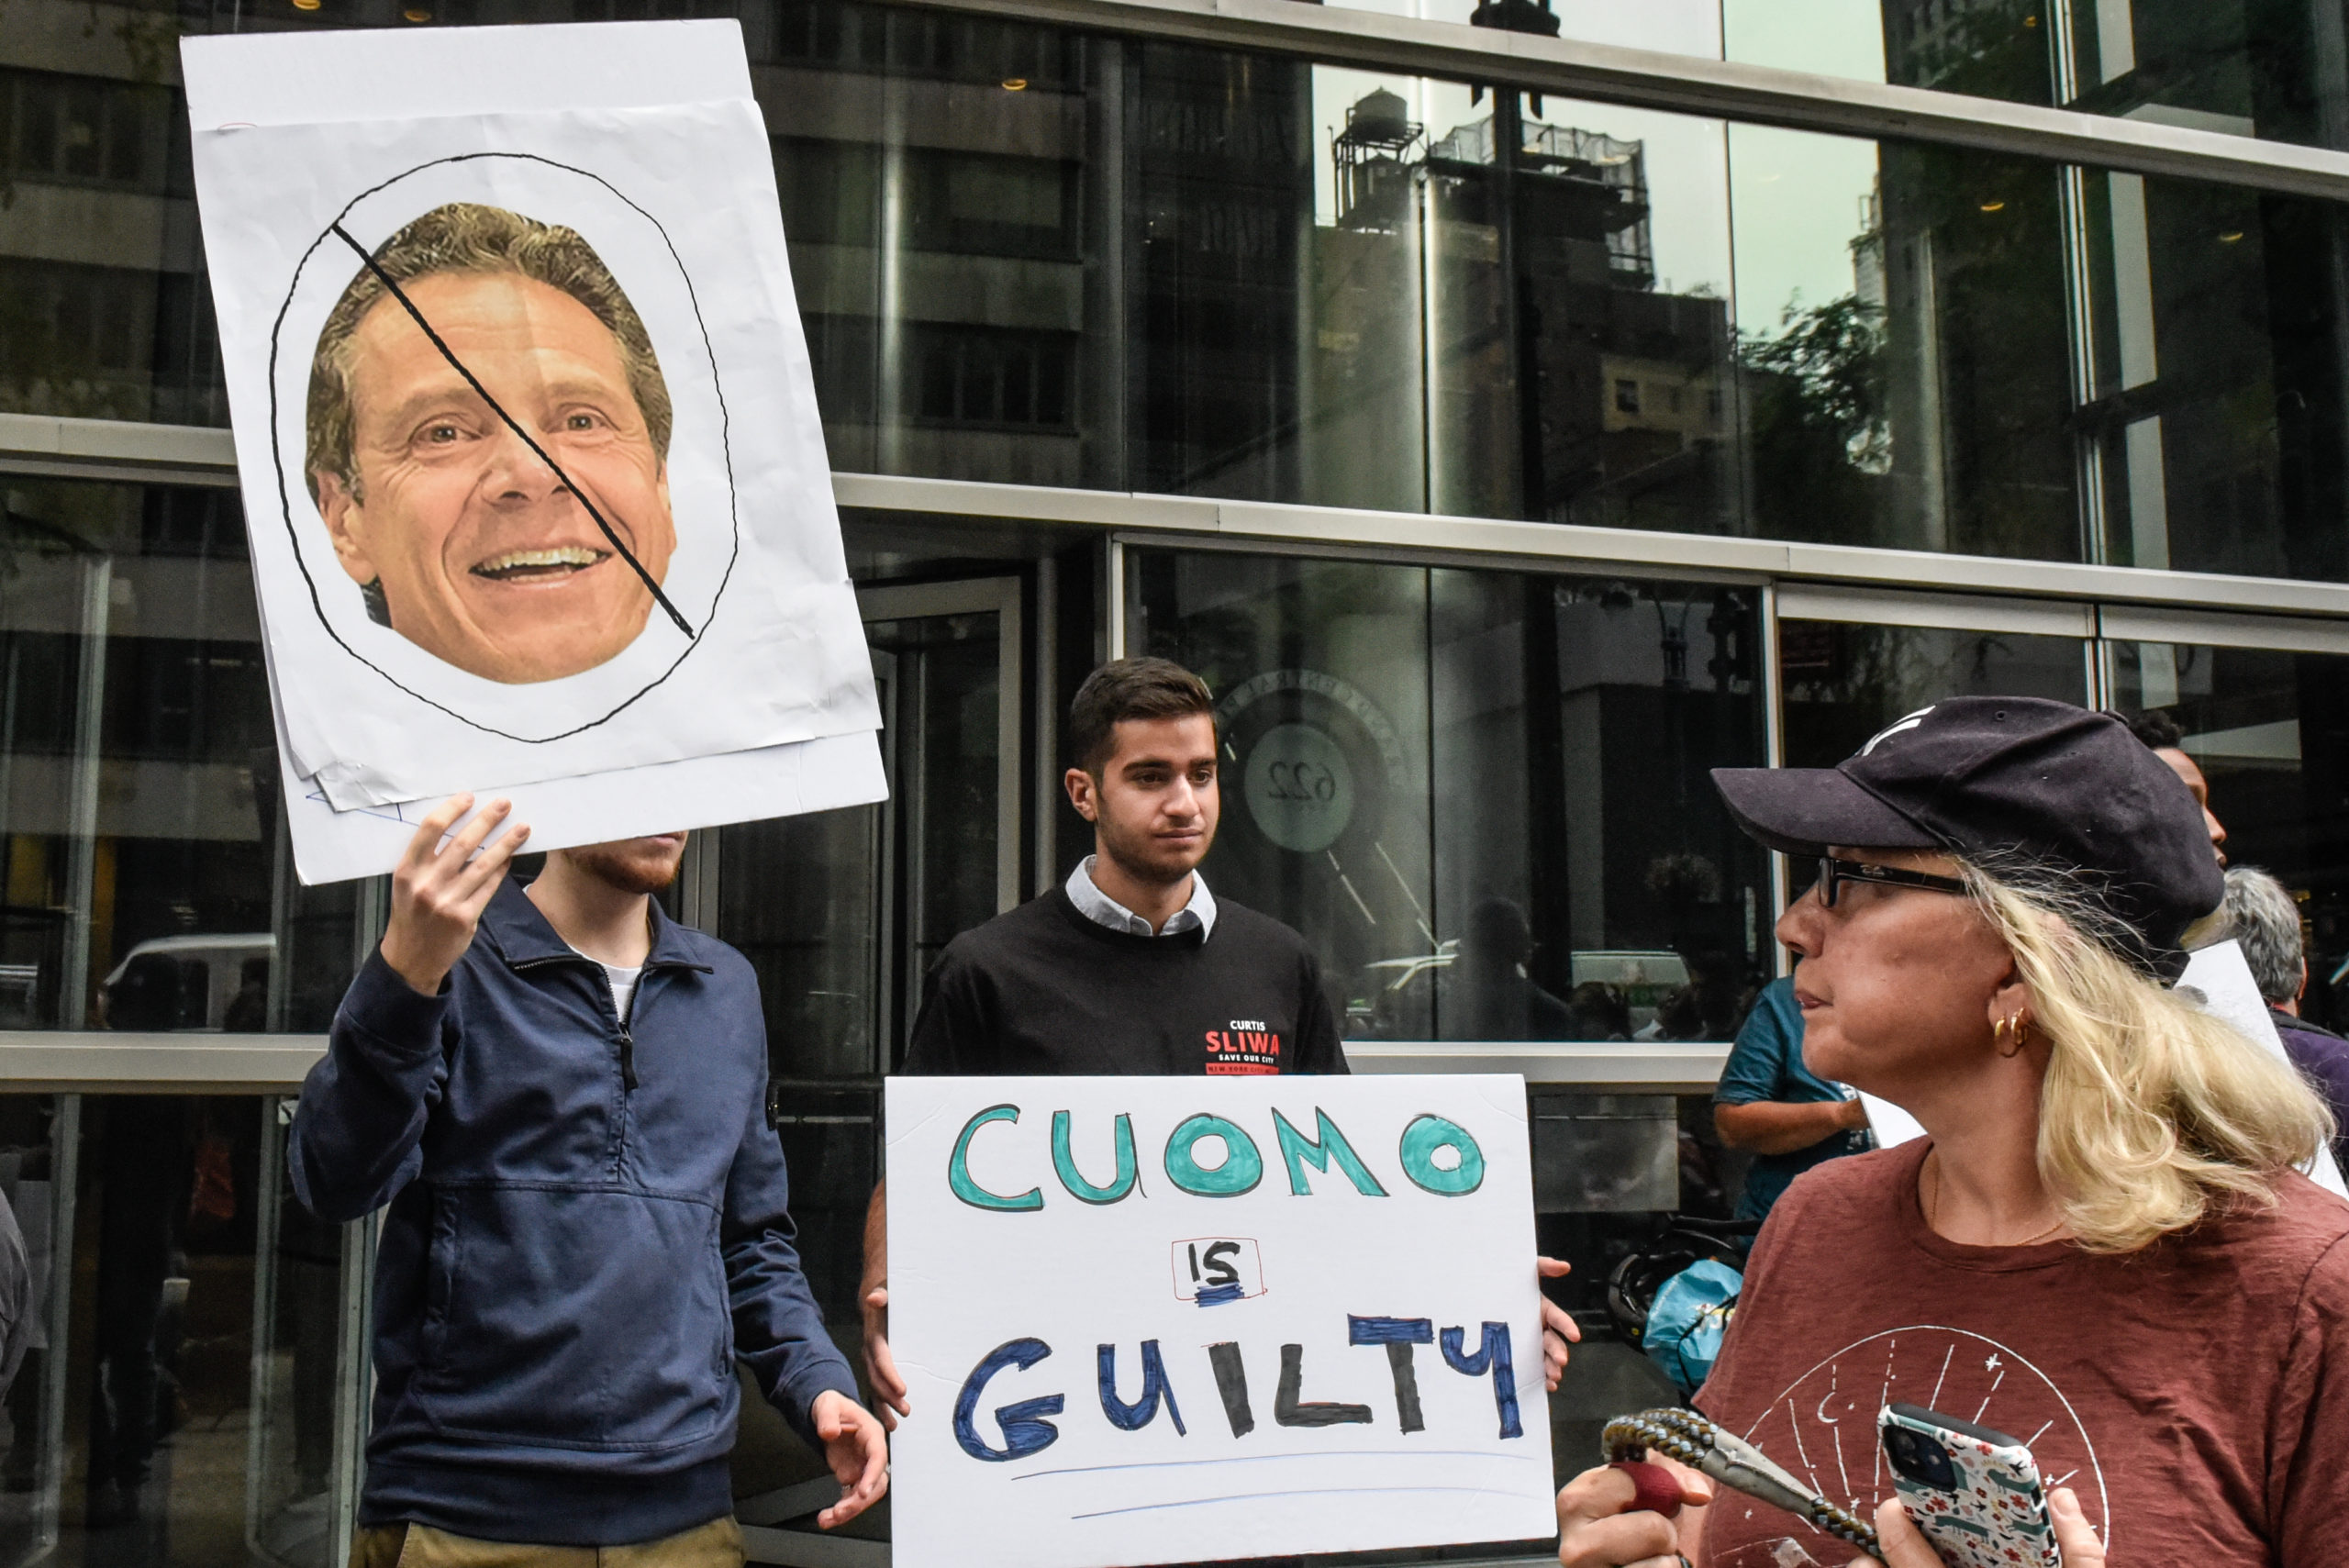 People participate in a protest against N.Y. Governor Andrew Cuomo and protest for a moratorium on evictions on August 4, 2021 in New York City. (Photo by Stephanie Keith/Getty Images)